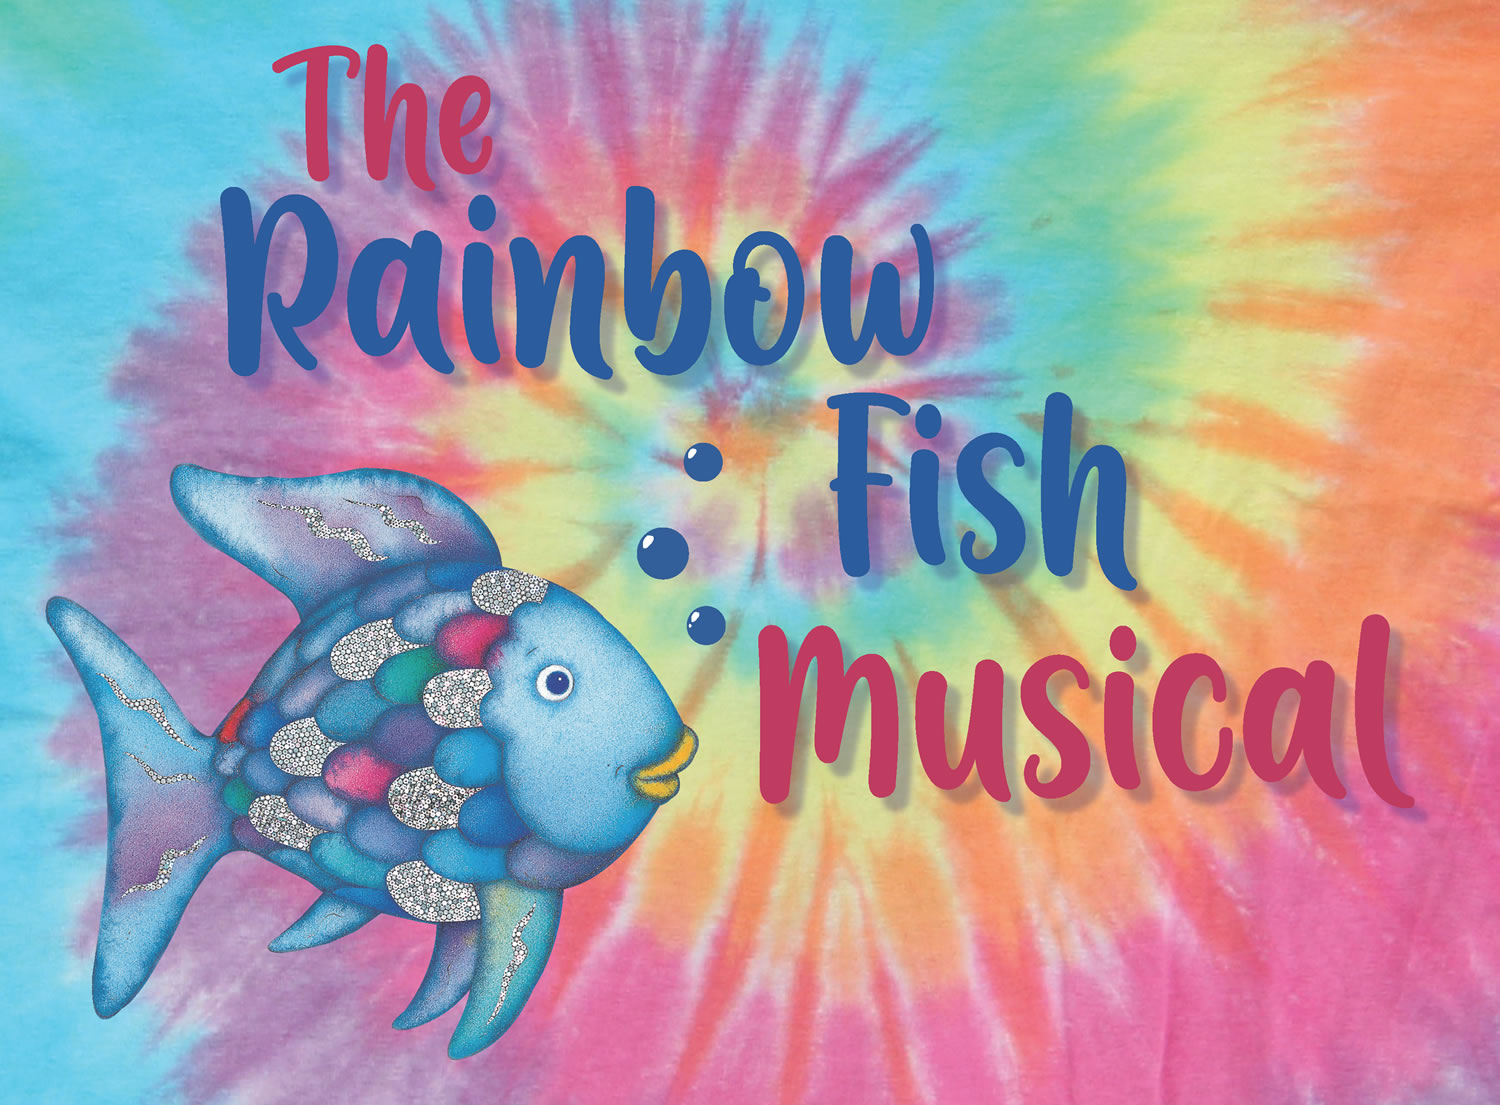 The Rainbow Fish Musical banner image